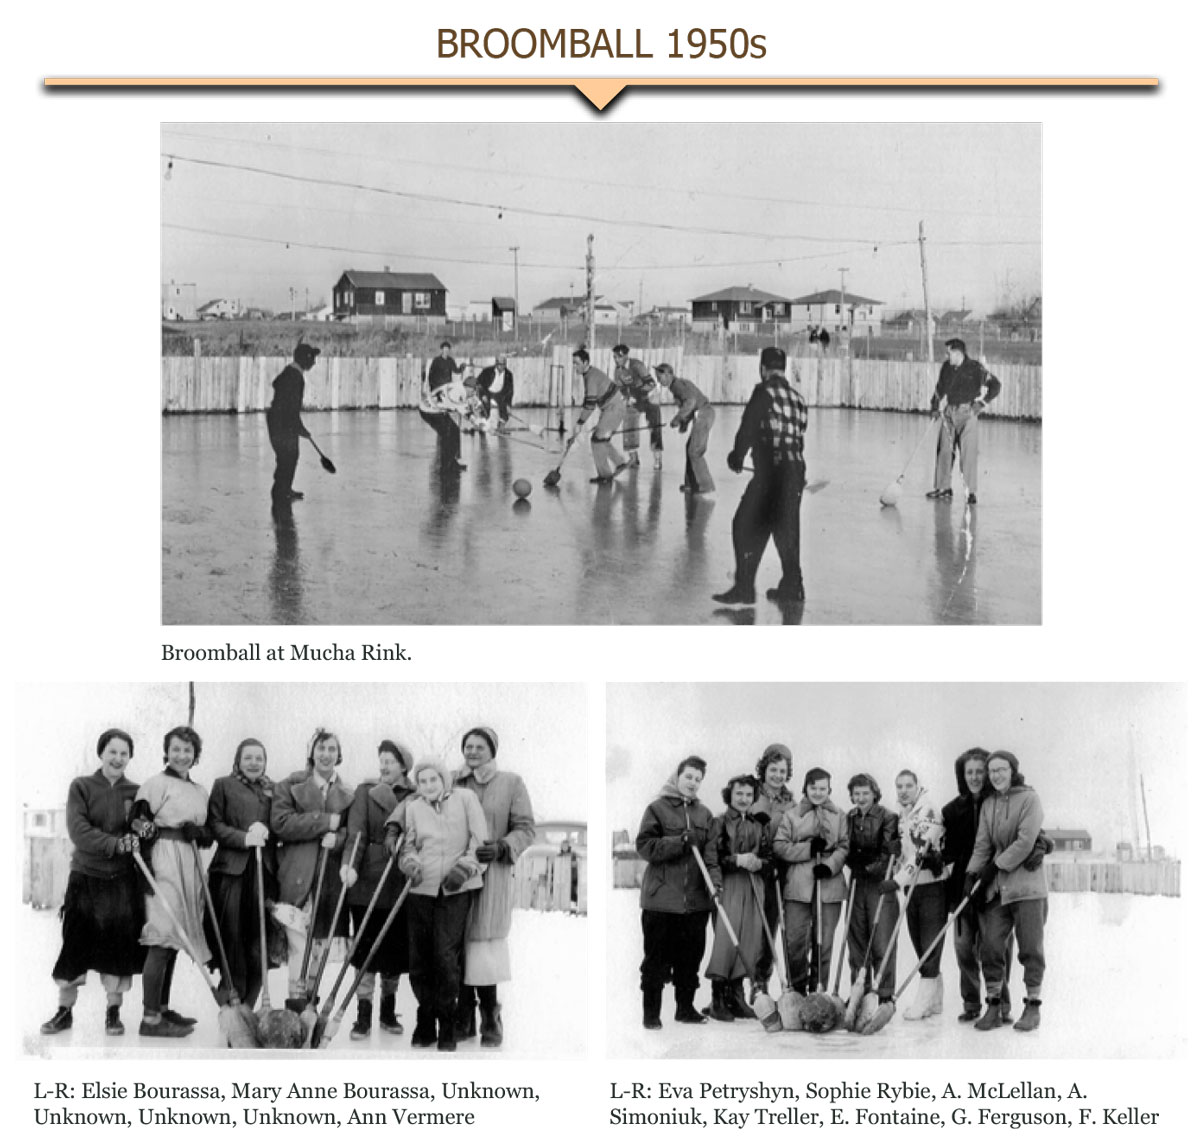 1950s Broomball